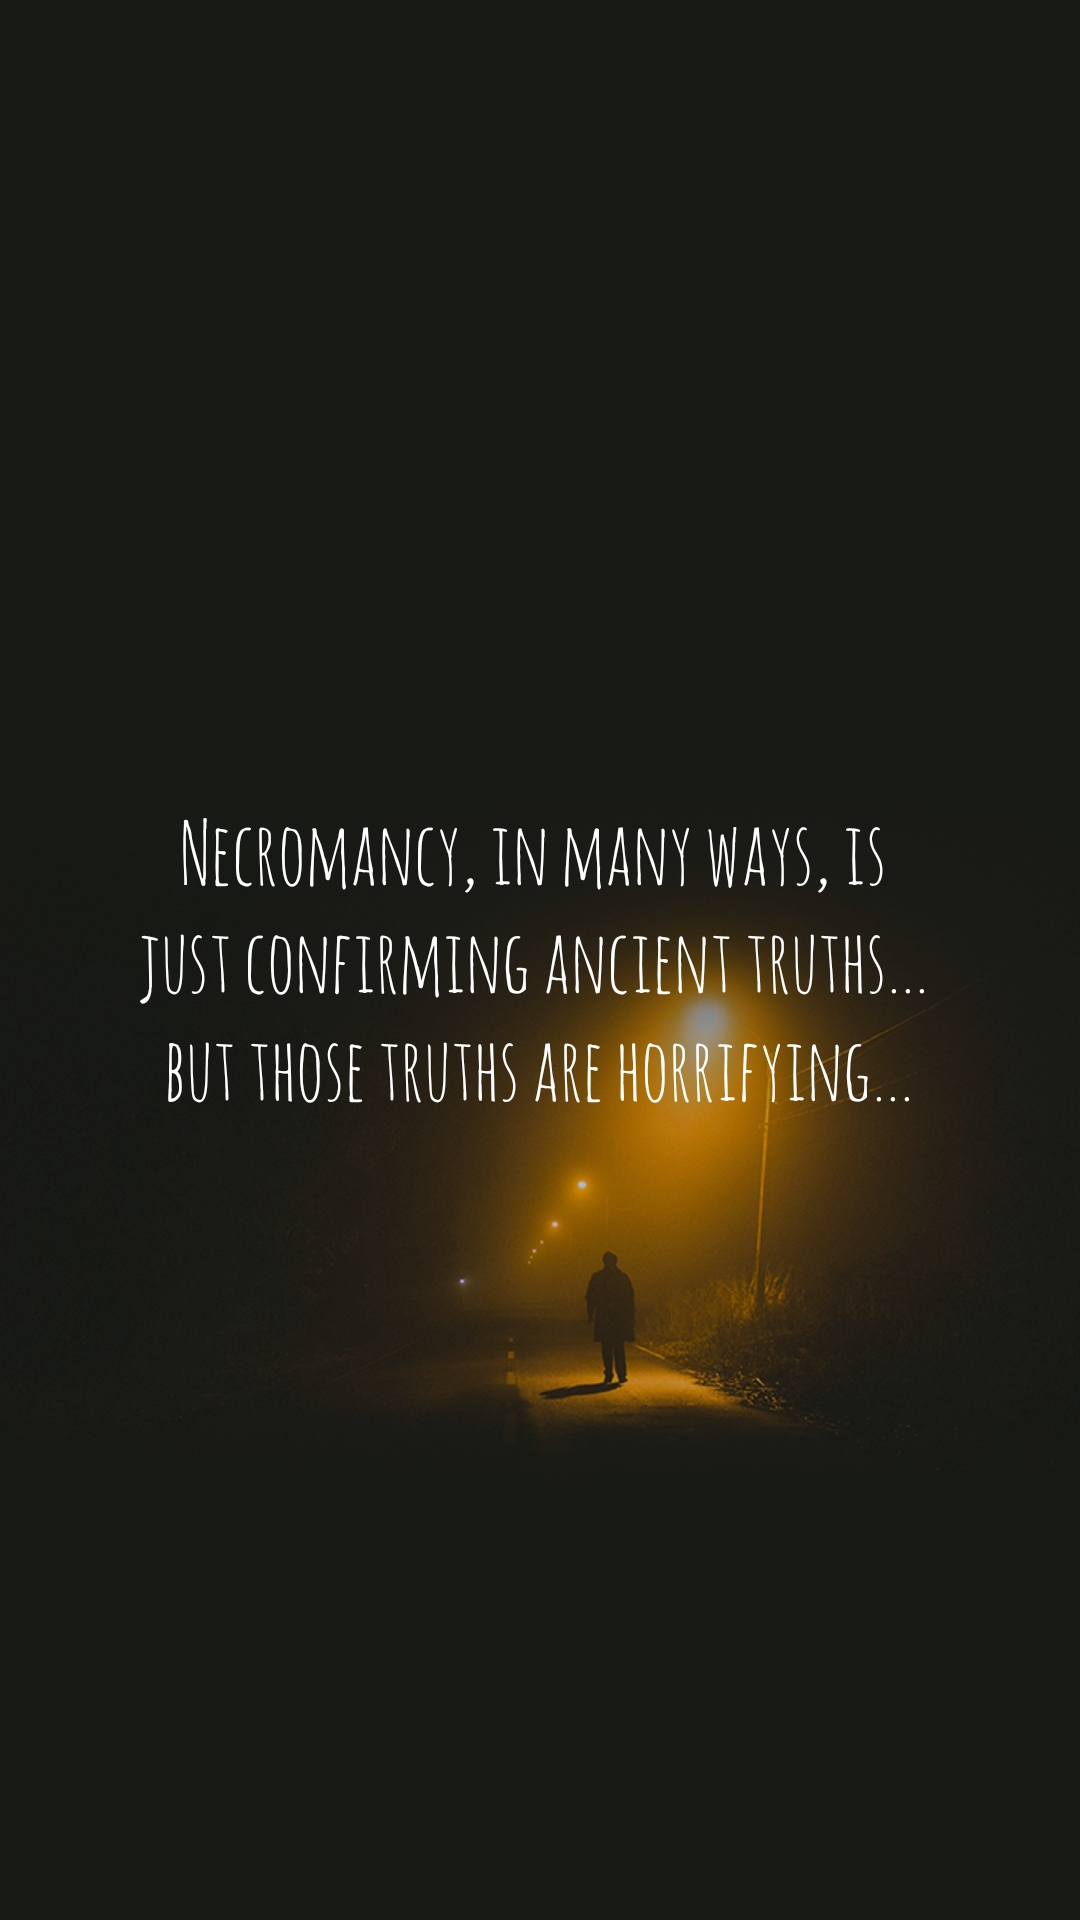 Necromancy, in many ways, is  just confirming ancient truths...  but those truths are horrifying...